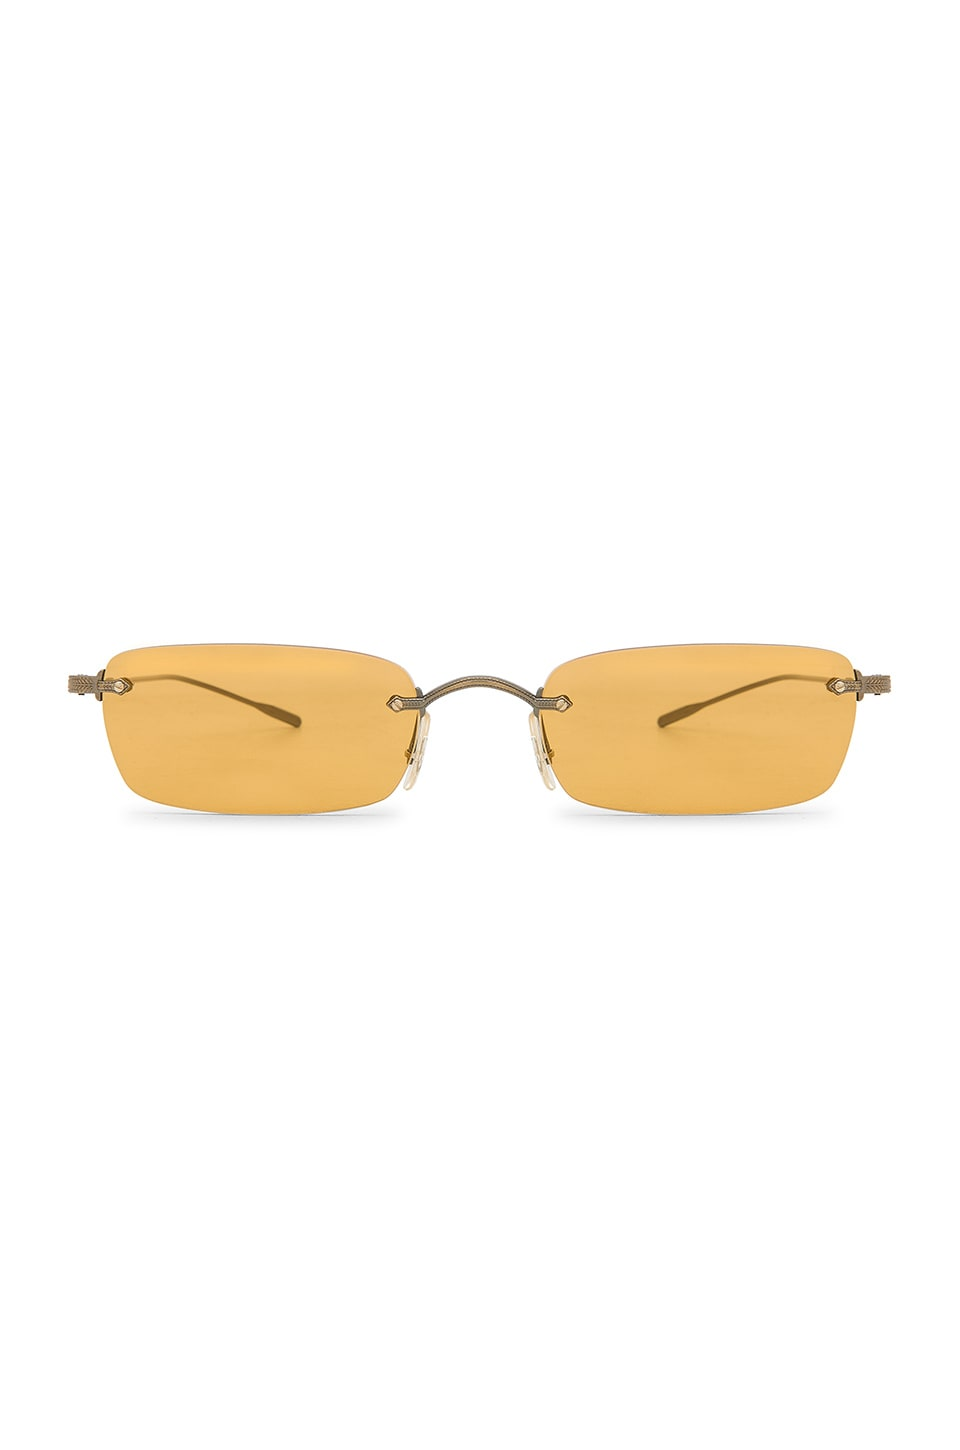 Oliver Peoples Daveigh in Antique Gold & Mustard